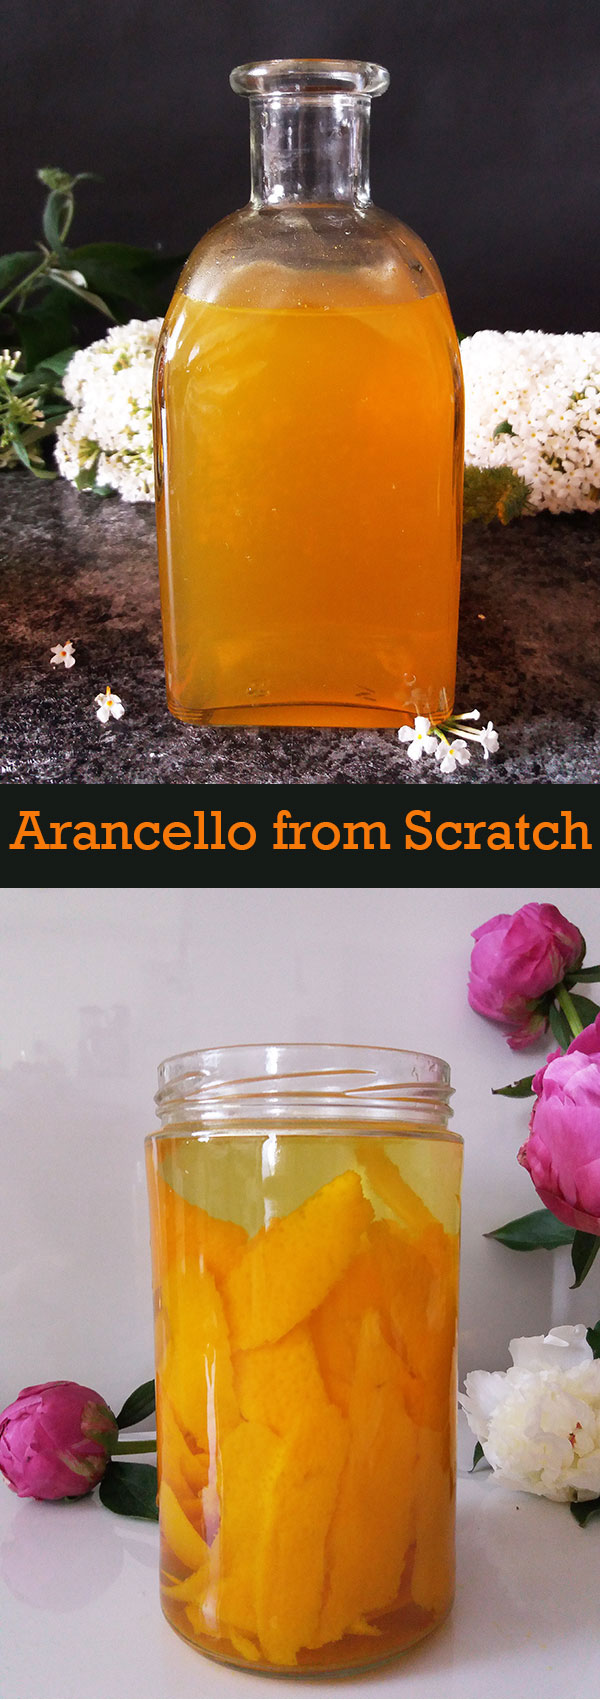 Arancello from Scratch : Orange Liqueur, homemade. Arancello fatto in casa, ricetta della nona. Four ingredients only to have the best arancello made completely from scratch !